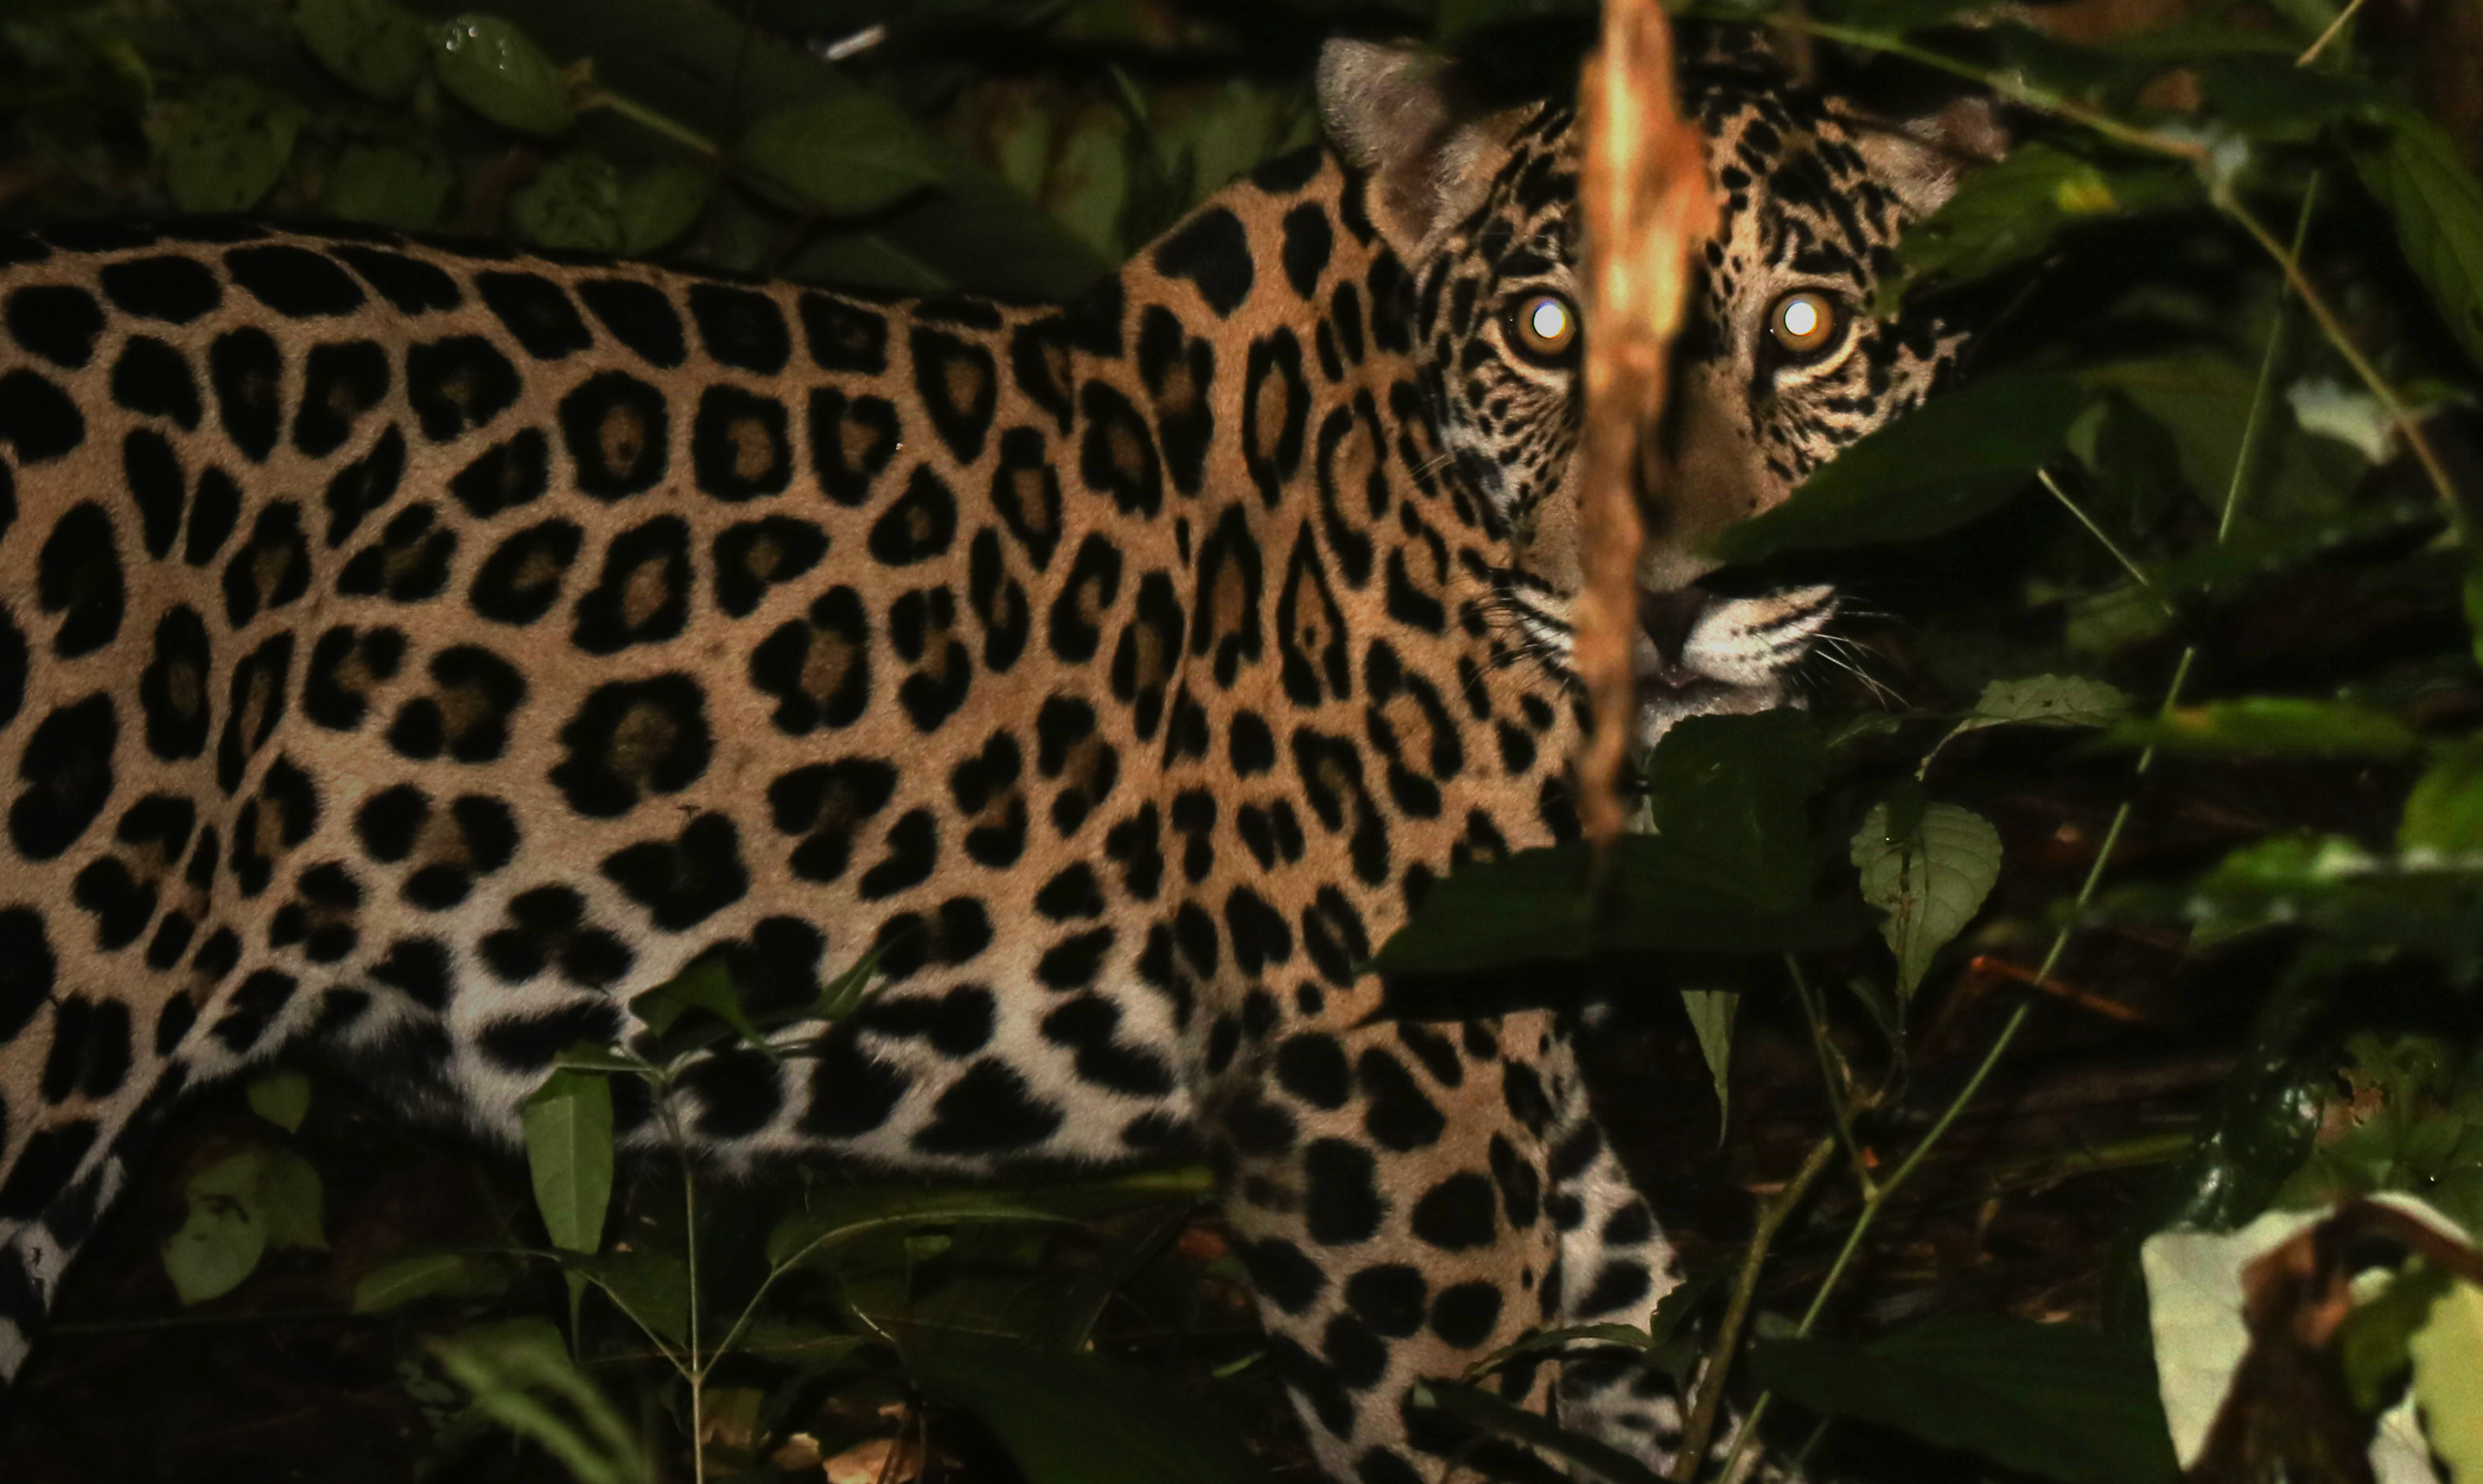 First Jaguar in Panama Fitted with GPS Transmitter